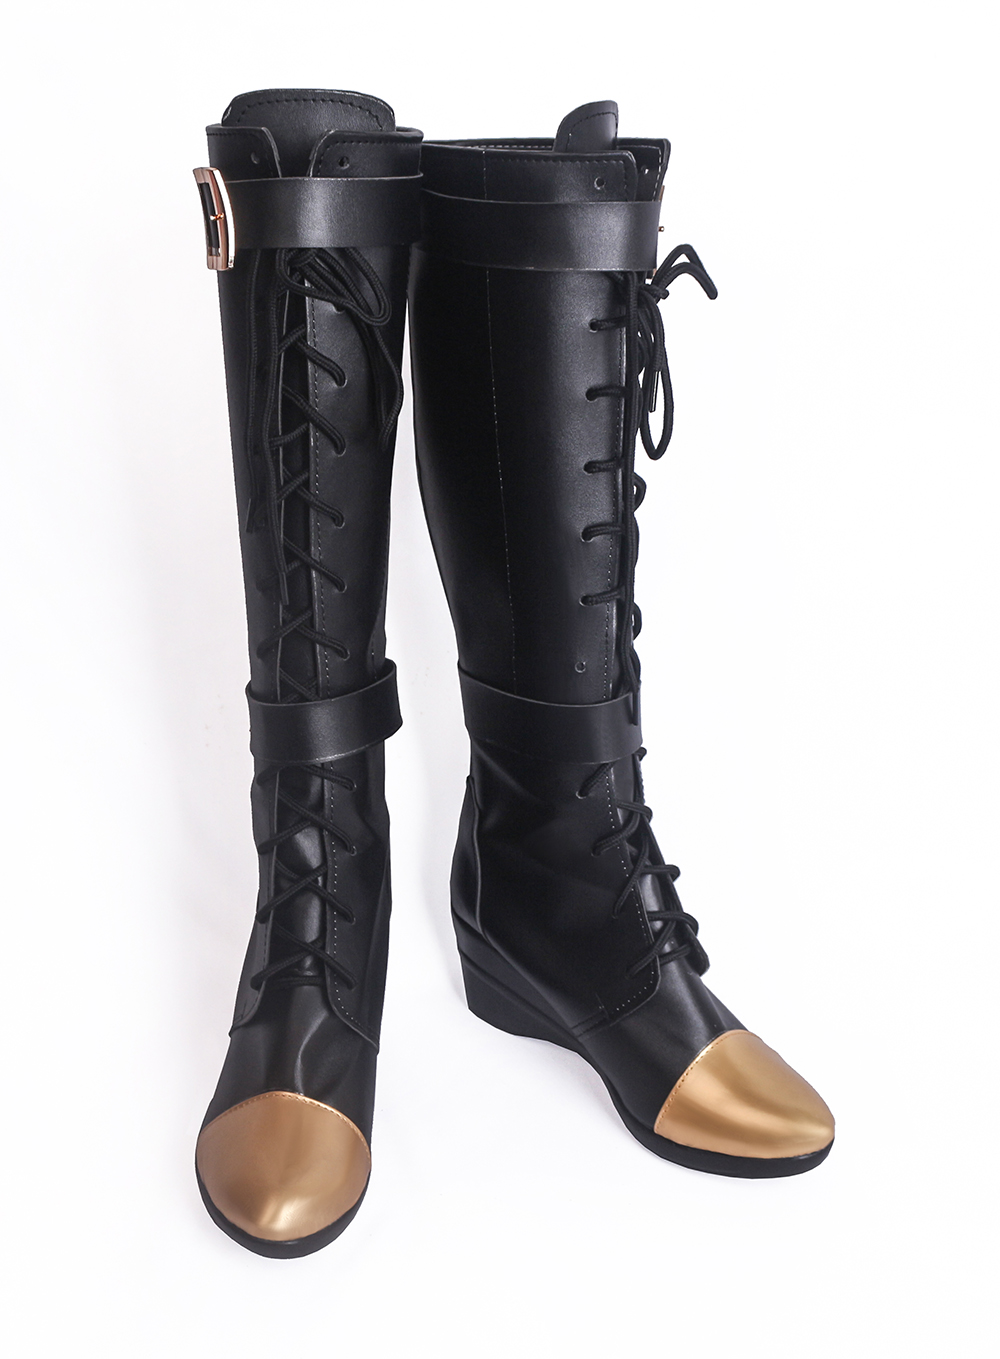 LOL Caitlyn the Sheriff of Piltover Cosplay Boots Shoes (2)